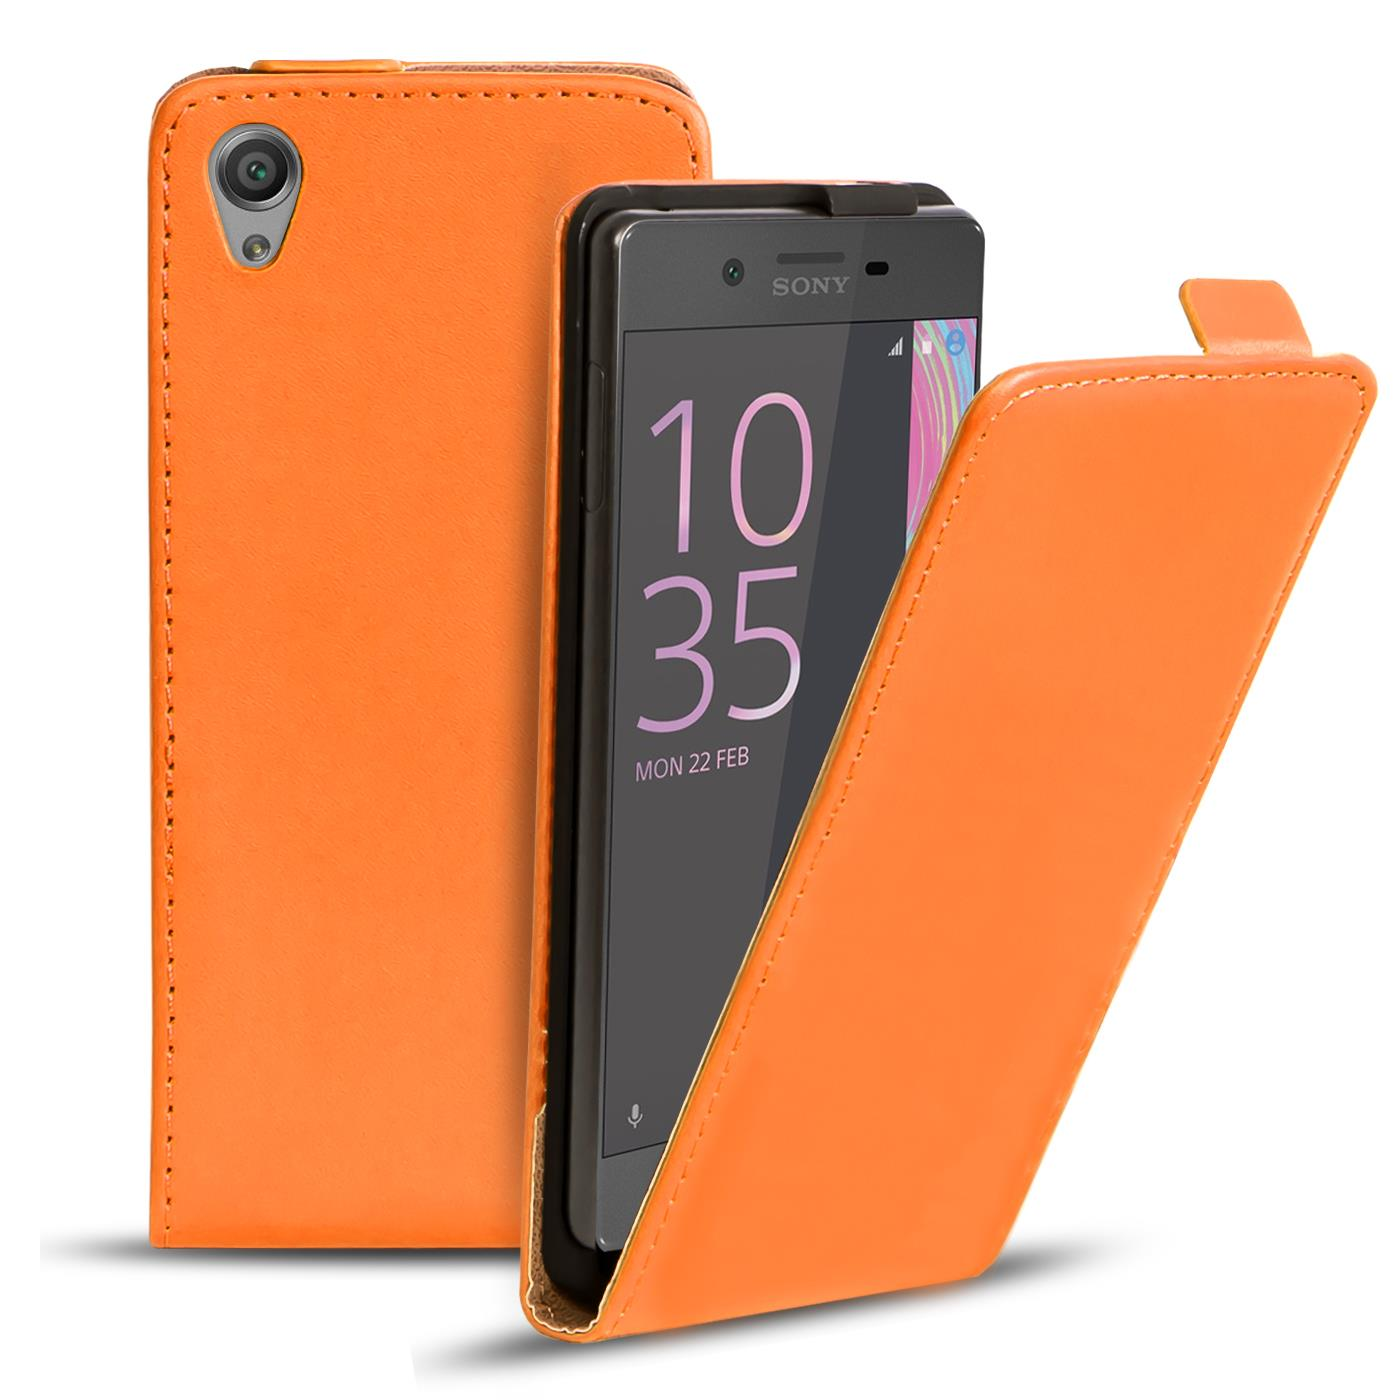 huge selection of 61cc8 8eb45 Details about Slim Flip Cover Case sony Xperia Z2 Protective Case Phone  Flip Protection Case